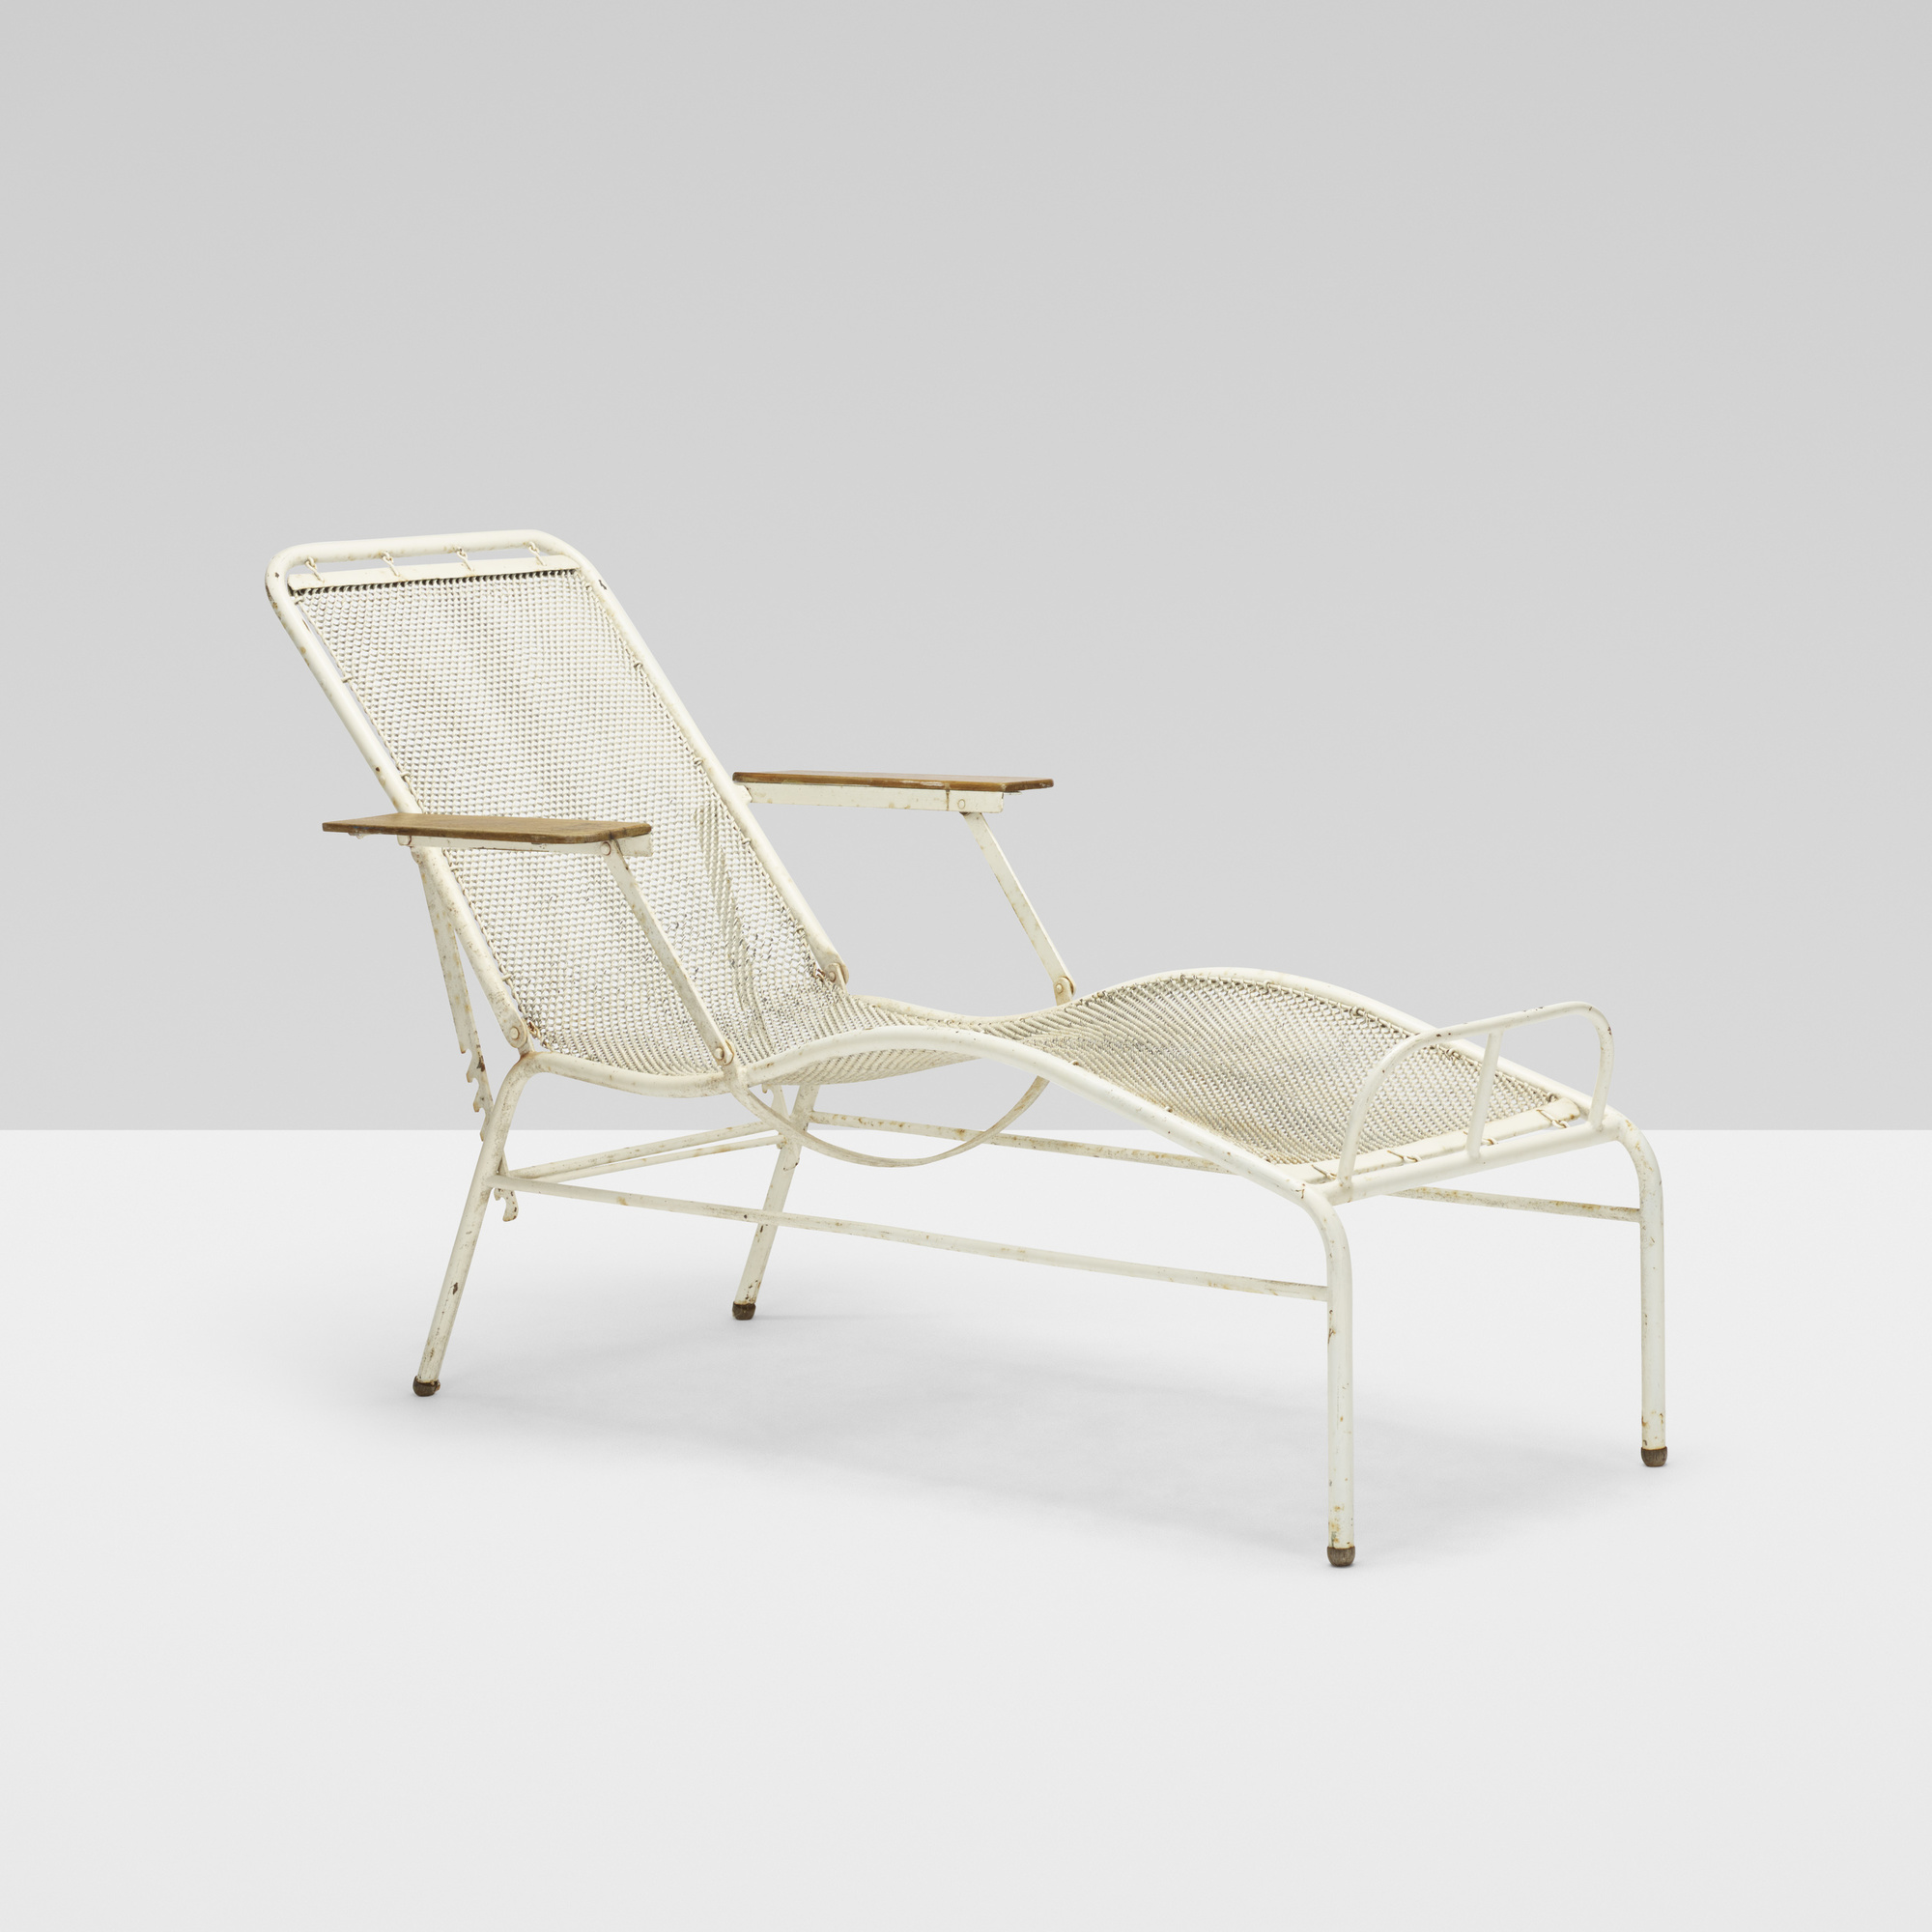 182 jean prouv and jules leleu chaise lounge from the martel de janville sanatorium plateau - Chaise de jean prouve ...